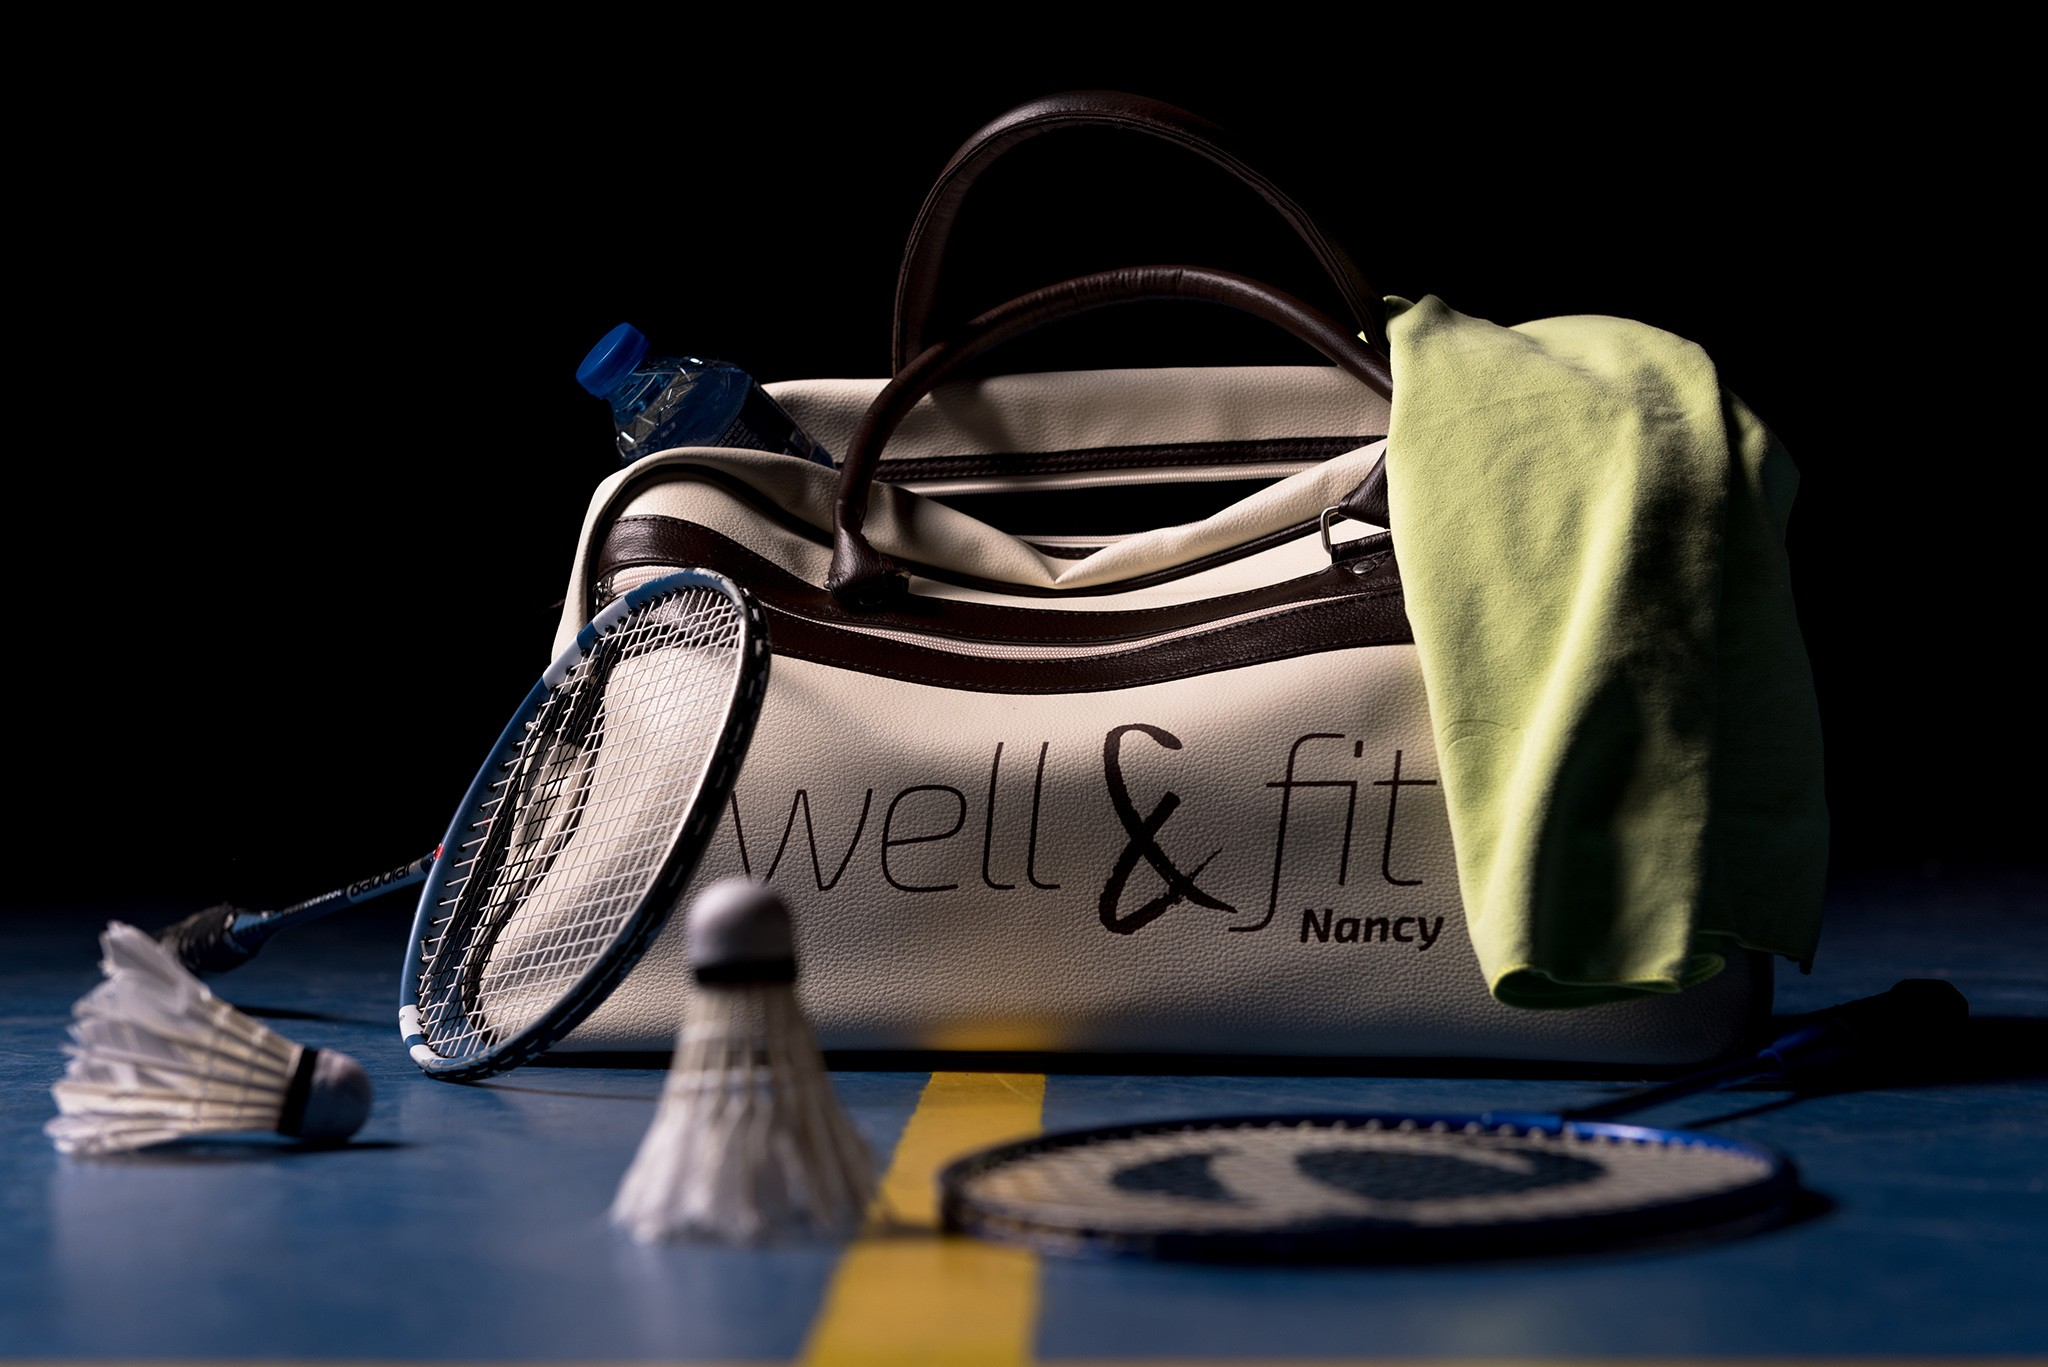 Corporate – Illustration pour Well & Fit Nancy